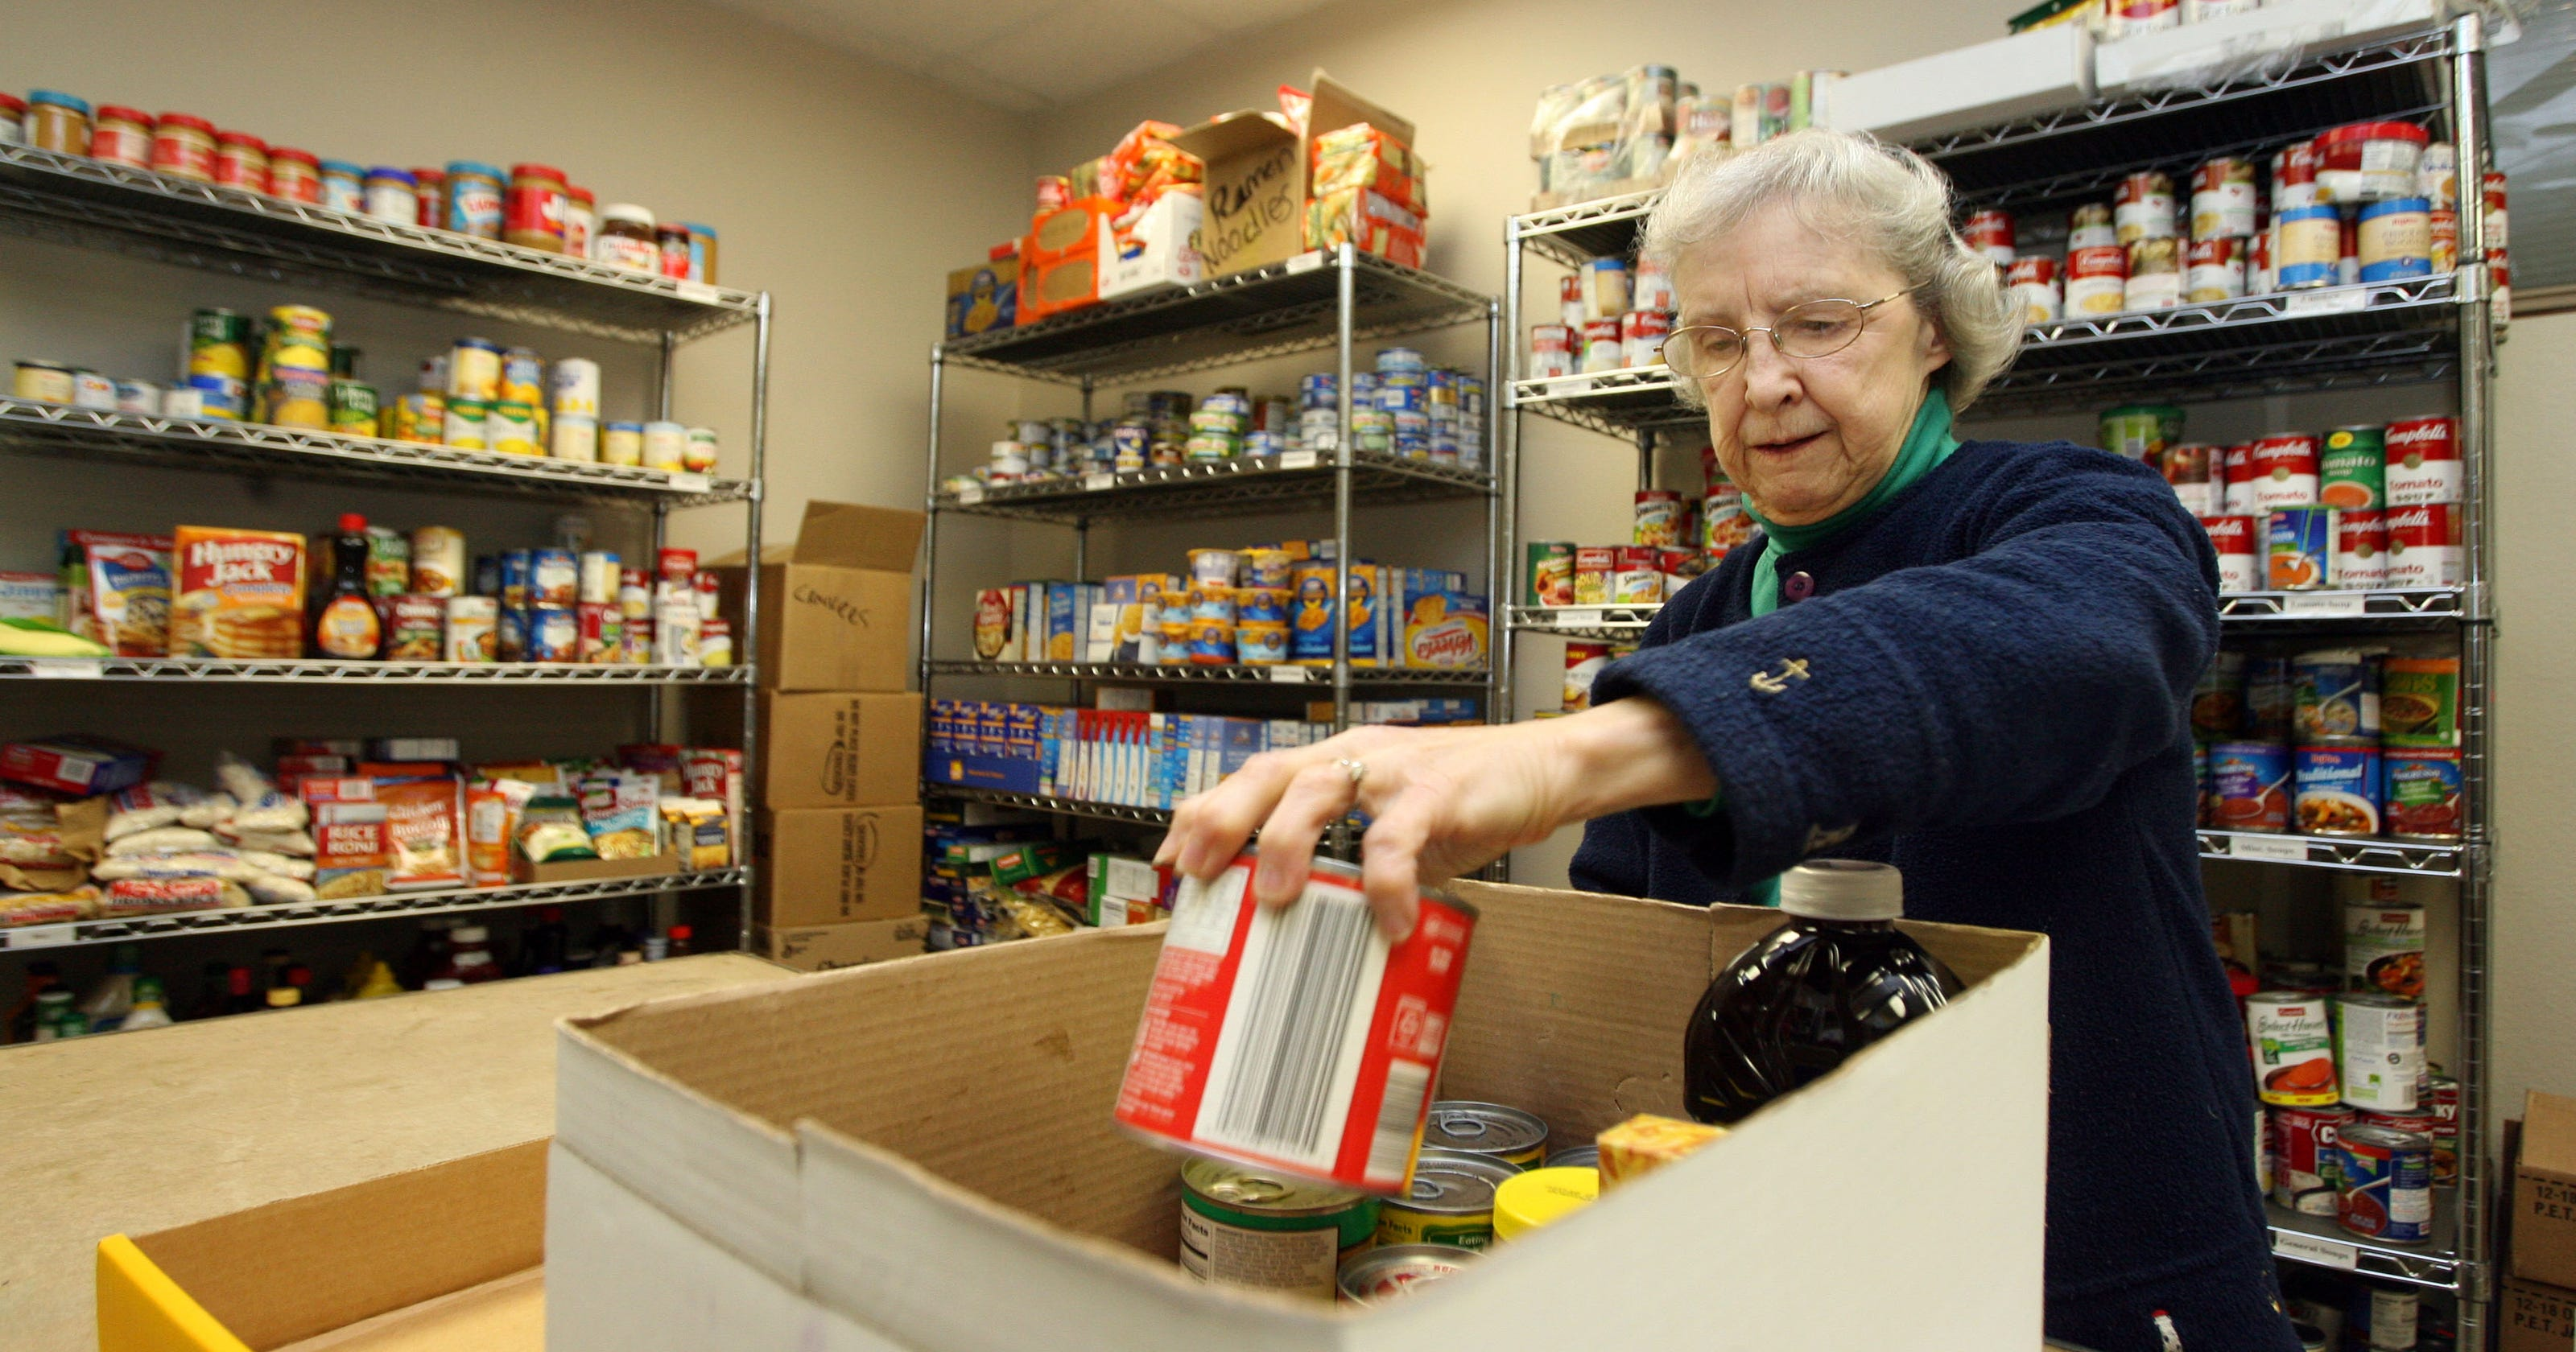 Looking for somewhere to volunteer? These groups are looking for help.